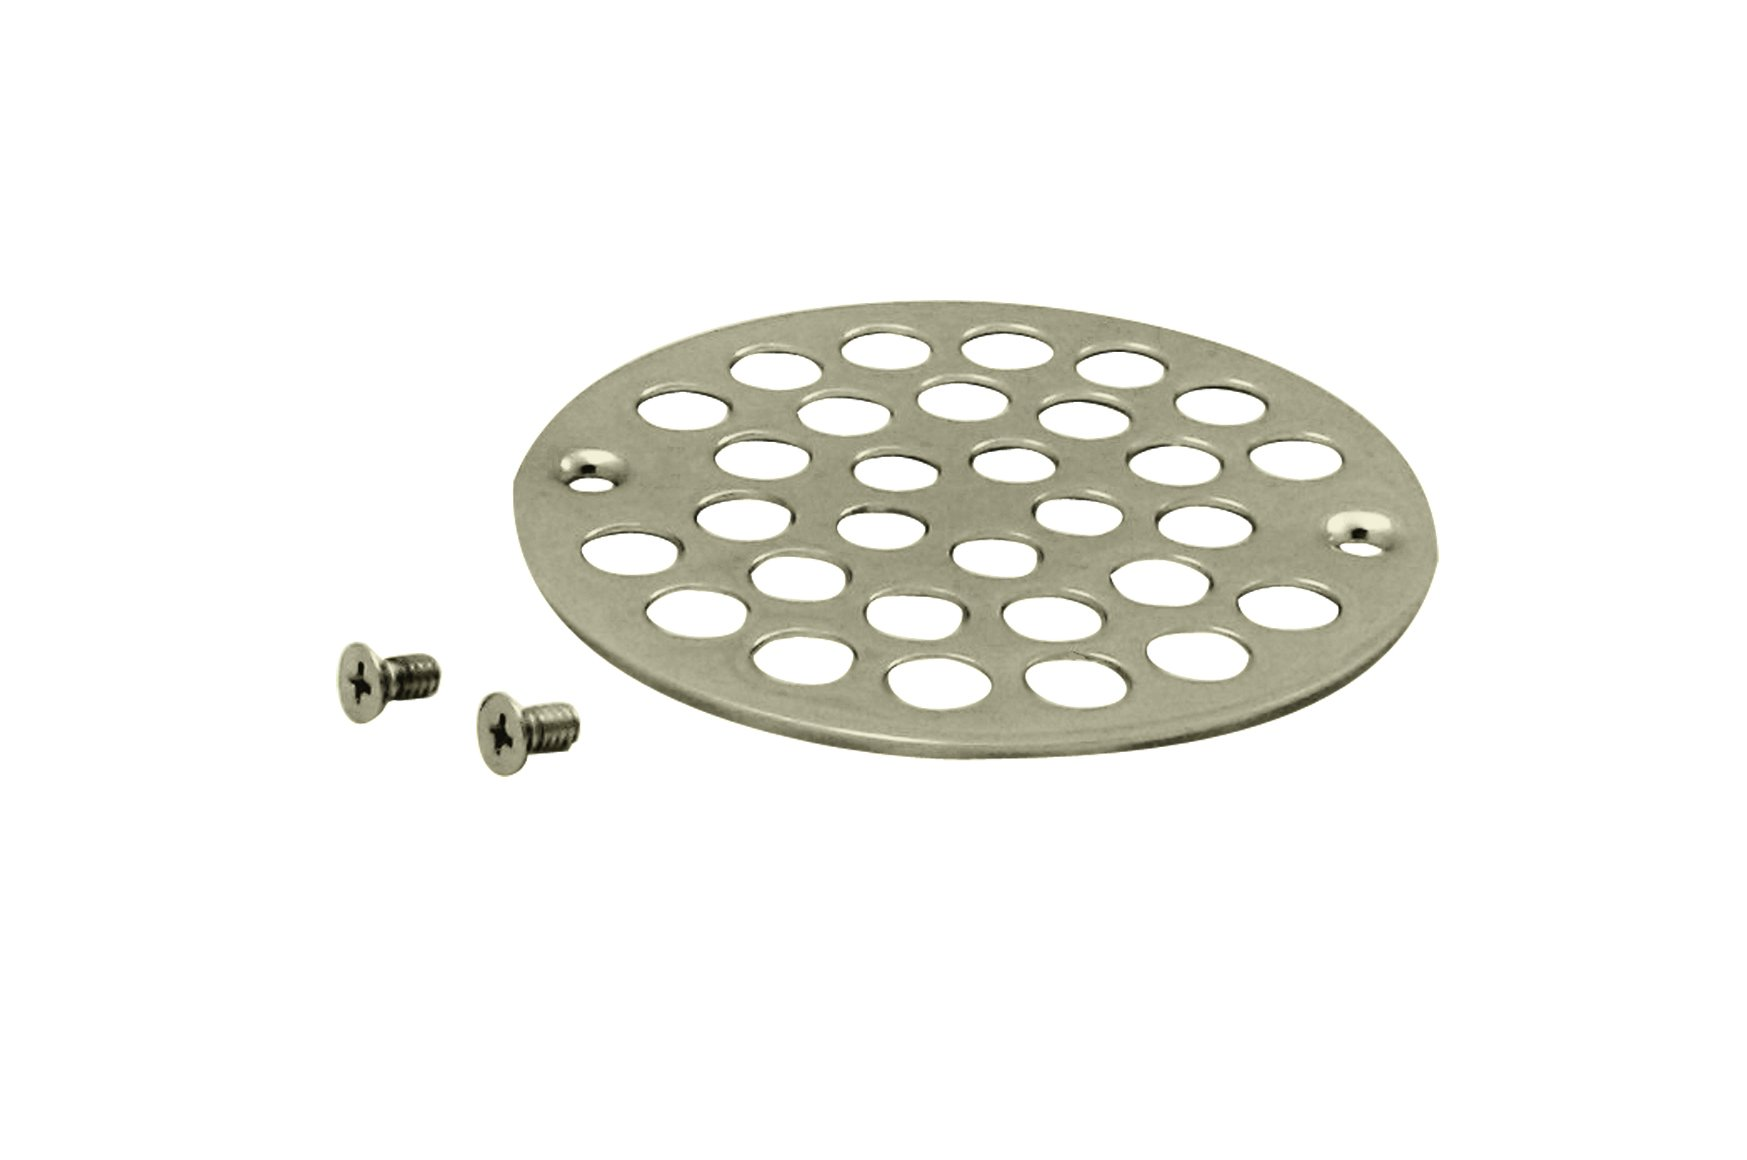 Westbrass 4'' O.D. Sold Brass Shower Strainer Cover, Polished Nickel, D3192-05